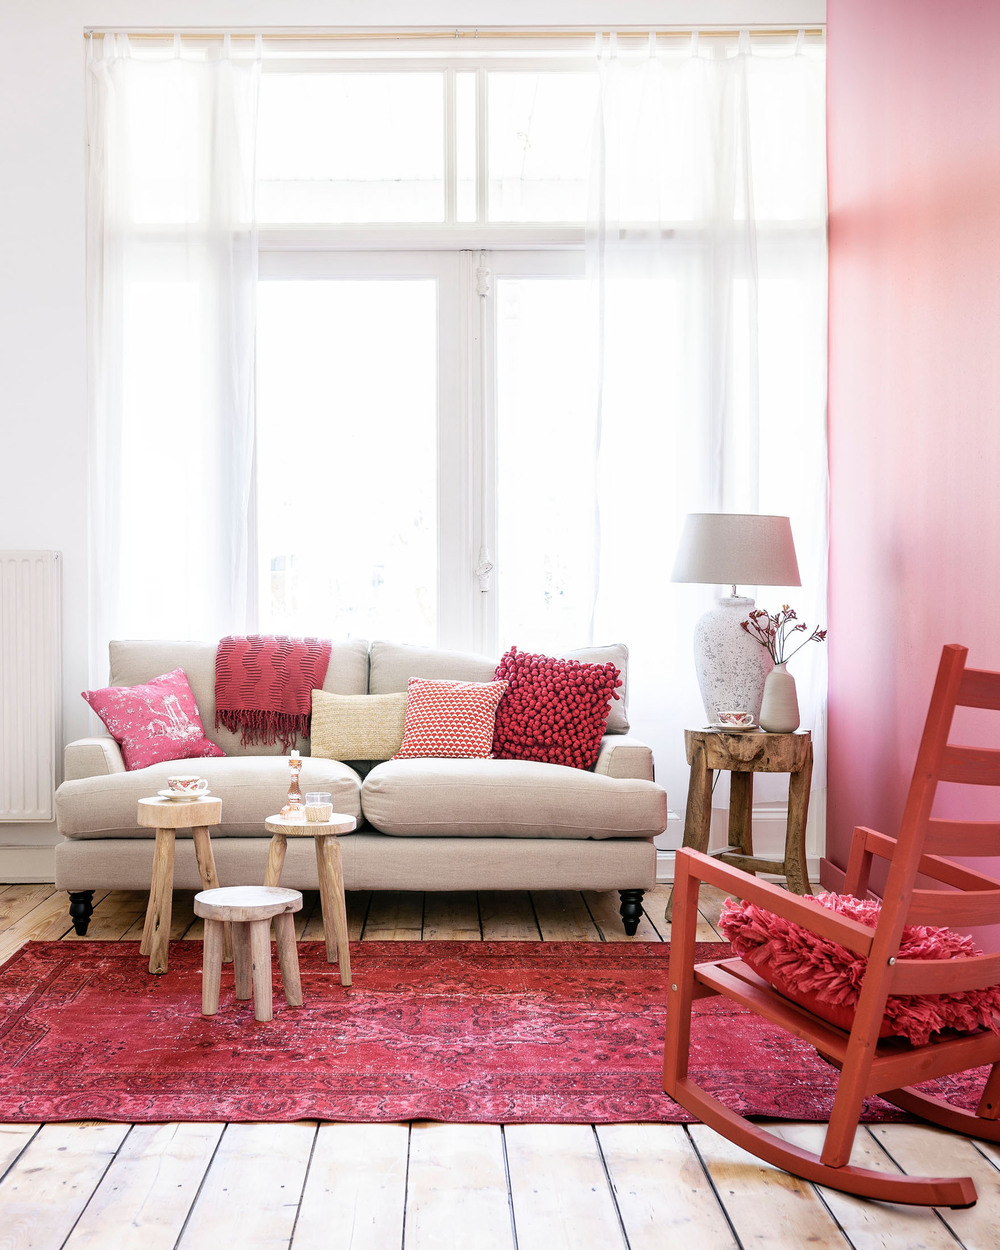 Red rooms done right! Check this out to see some beautiful red interiors.